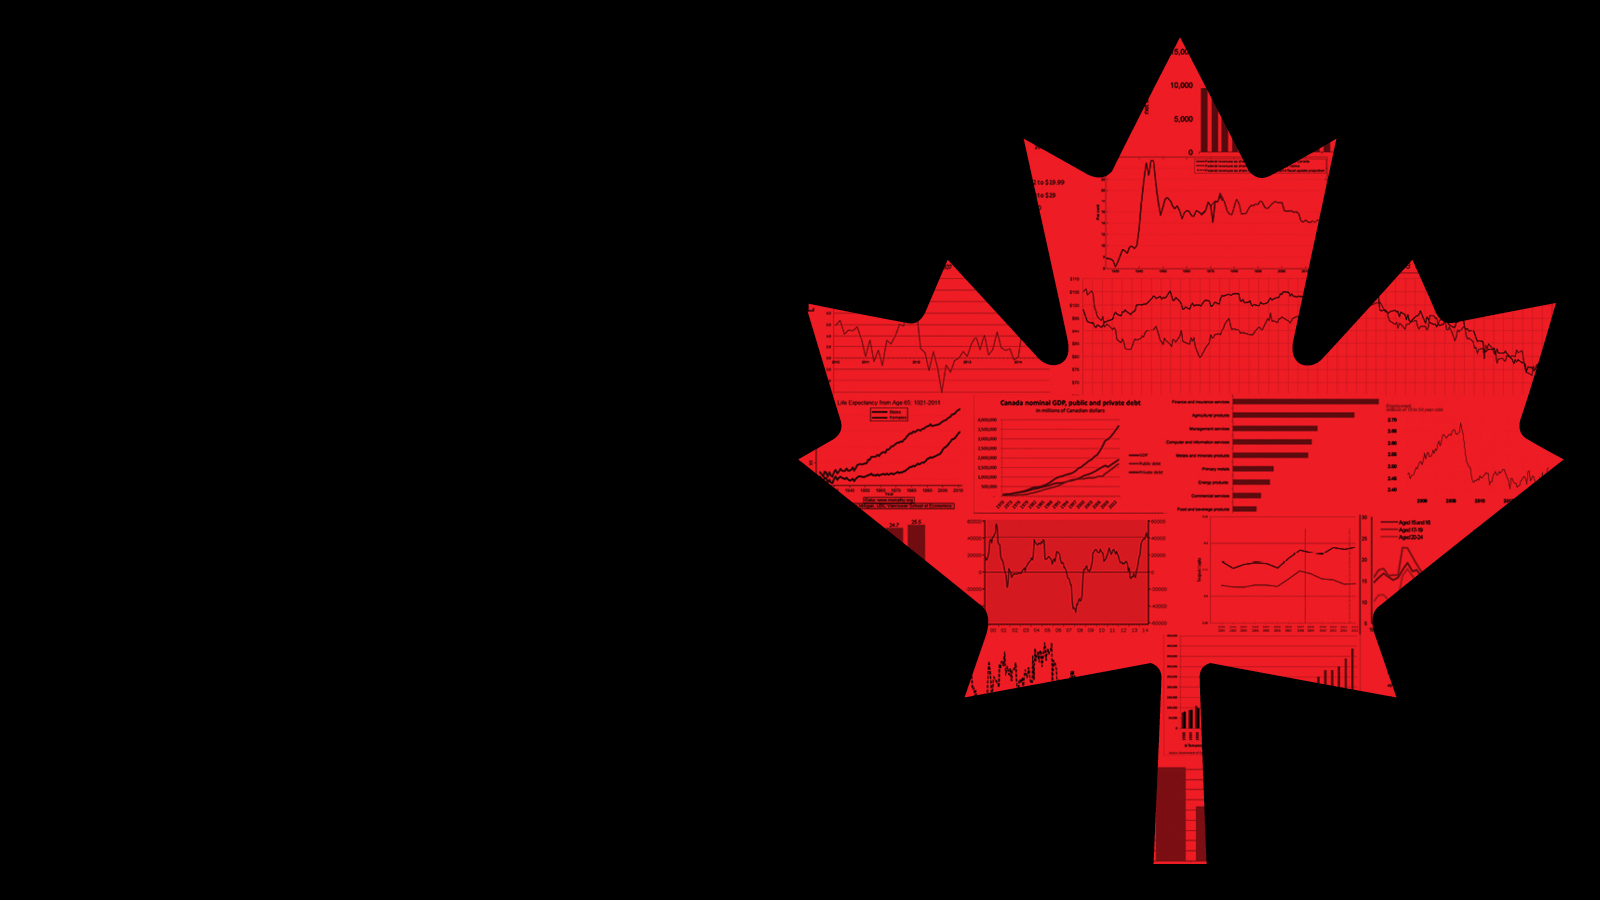 The most important Canadian charts to watch in 2016